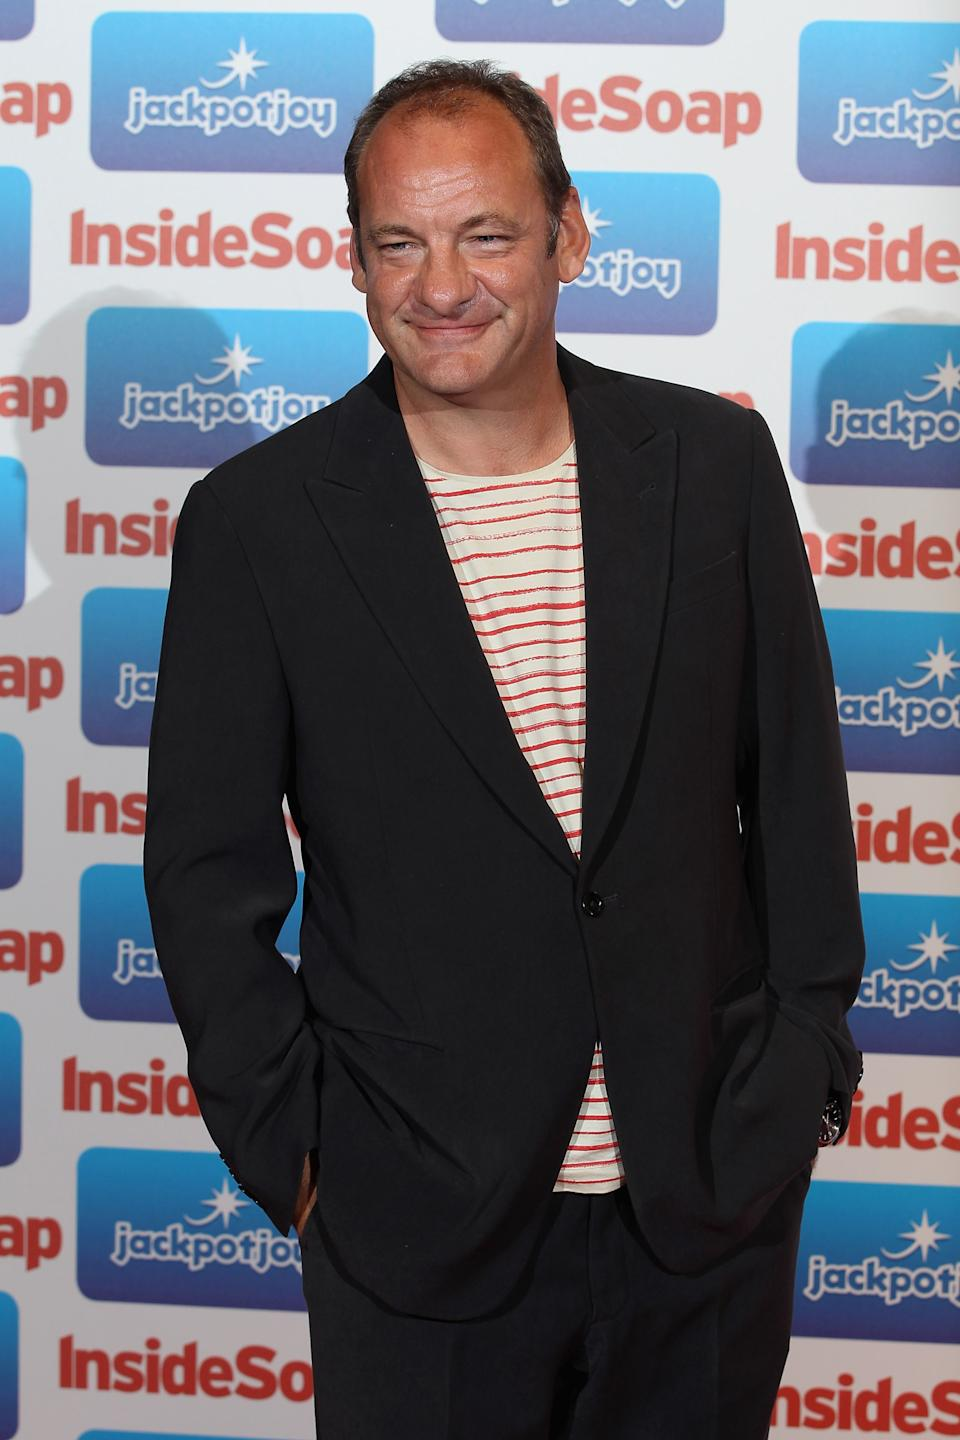 LONDON, ENGLAND - SEPTEMBER 26:  Actor Nick Miles from Emmerdale attends the Inside Soap Awards 2011 at Gilgamesh on September 26, 2011 in London, England.  (Photo by Mike Marsland/WireImage)